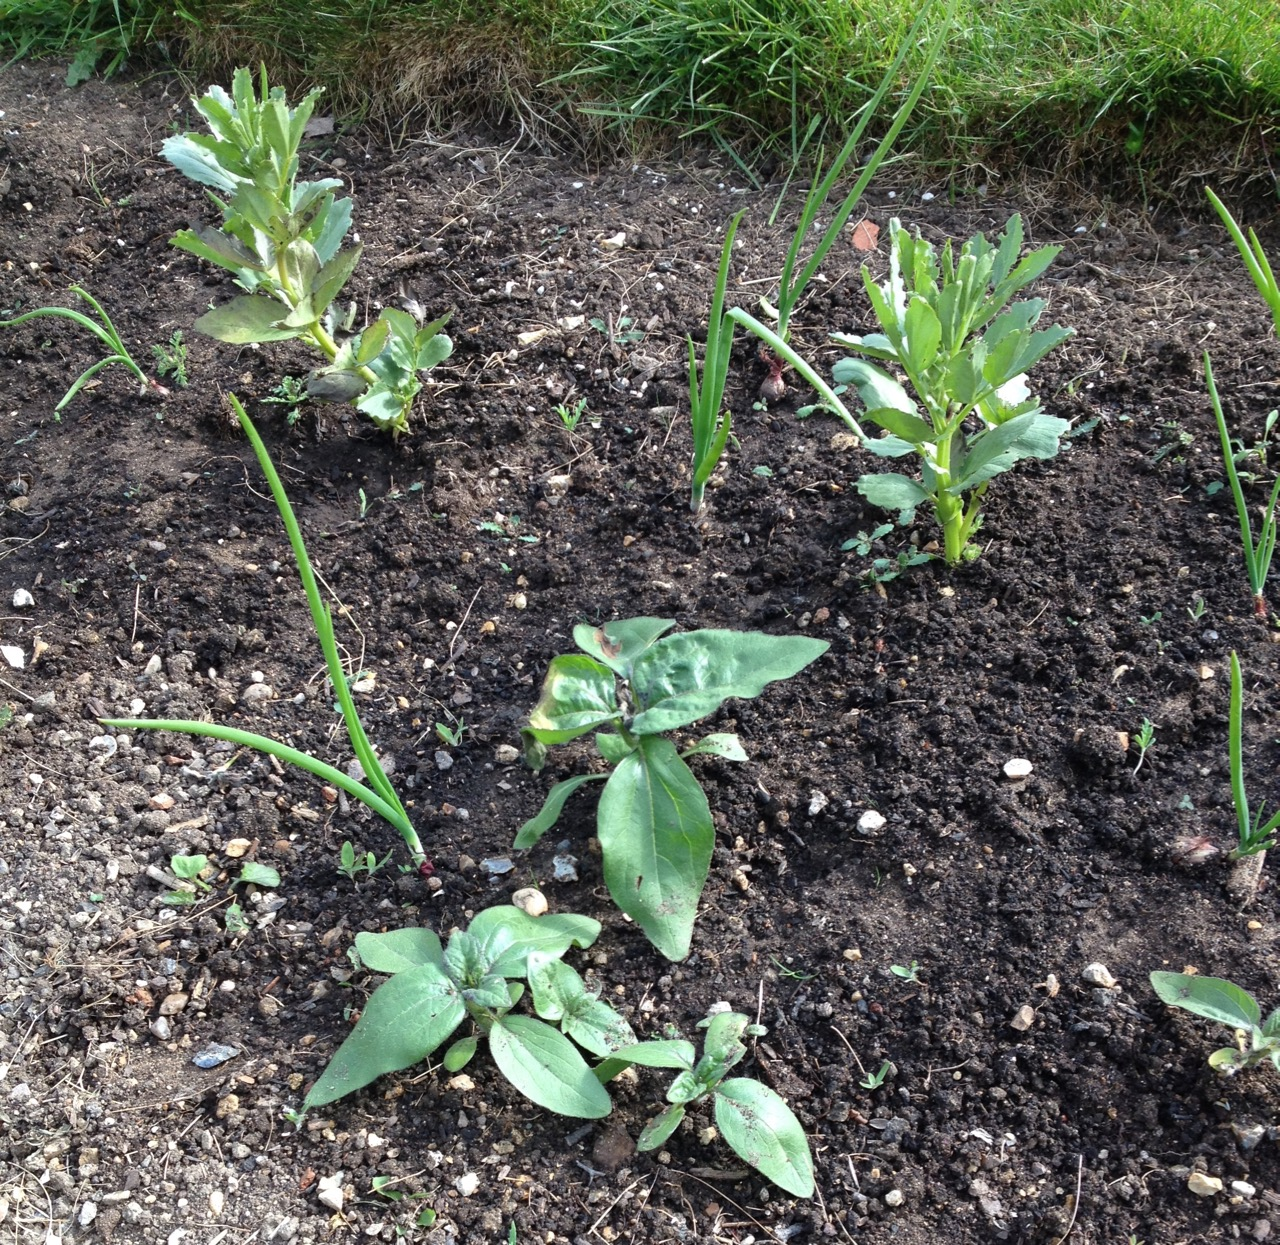 Self-sown sunflowers in the broad bean and onion row. These might be dwarf ones.